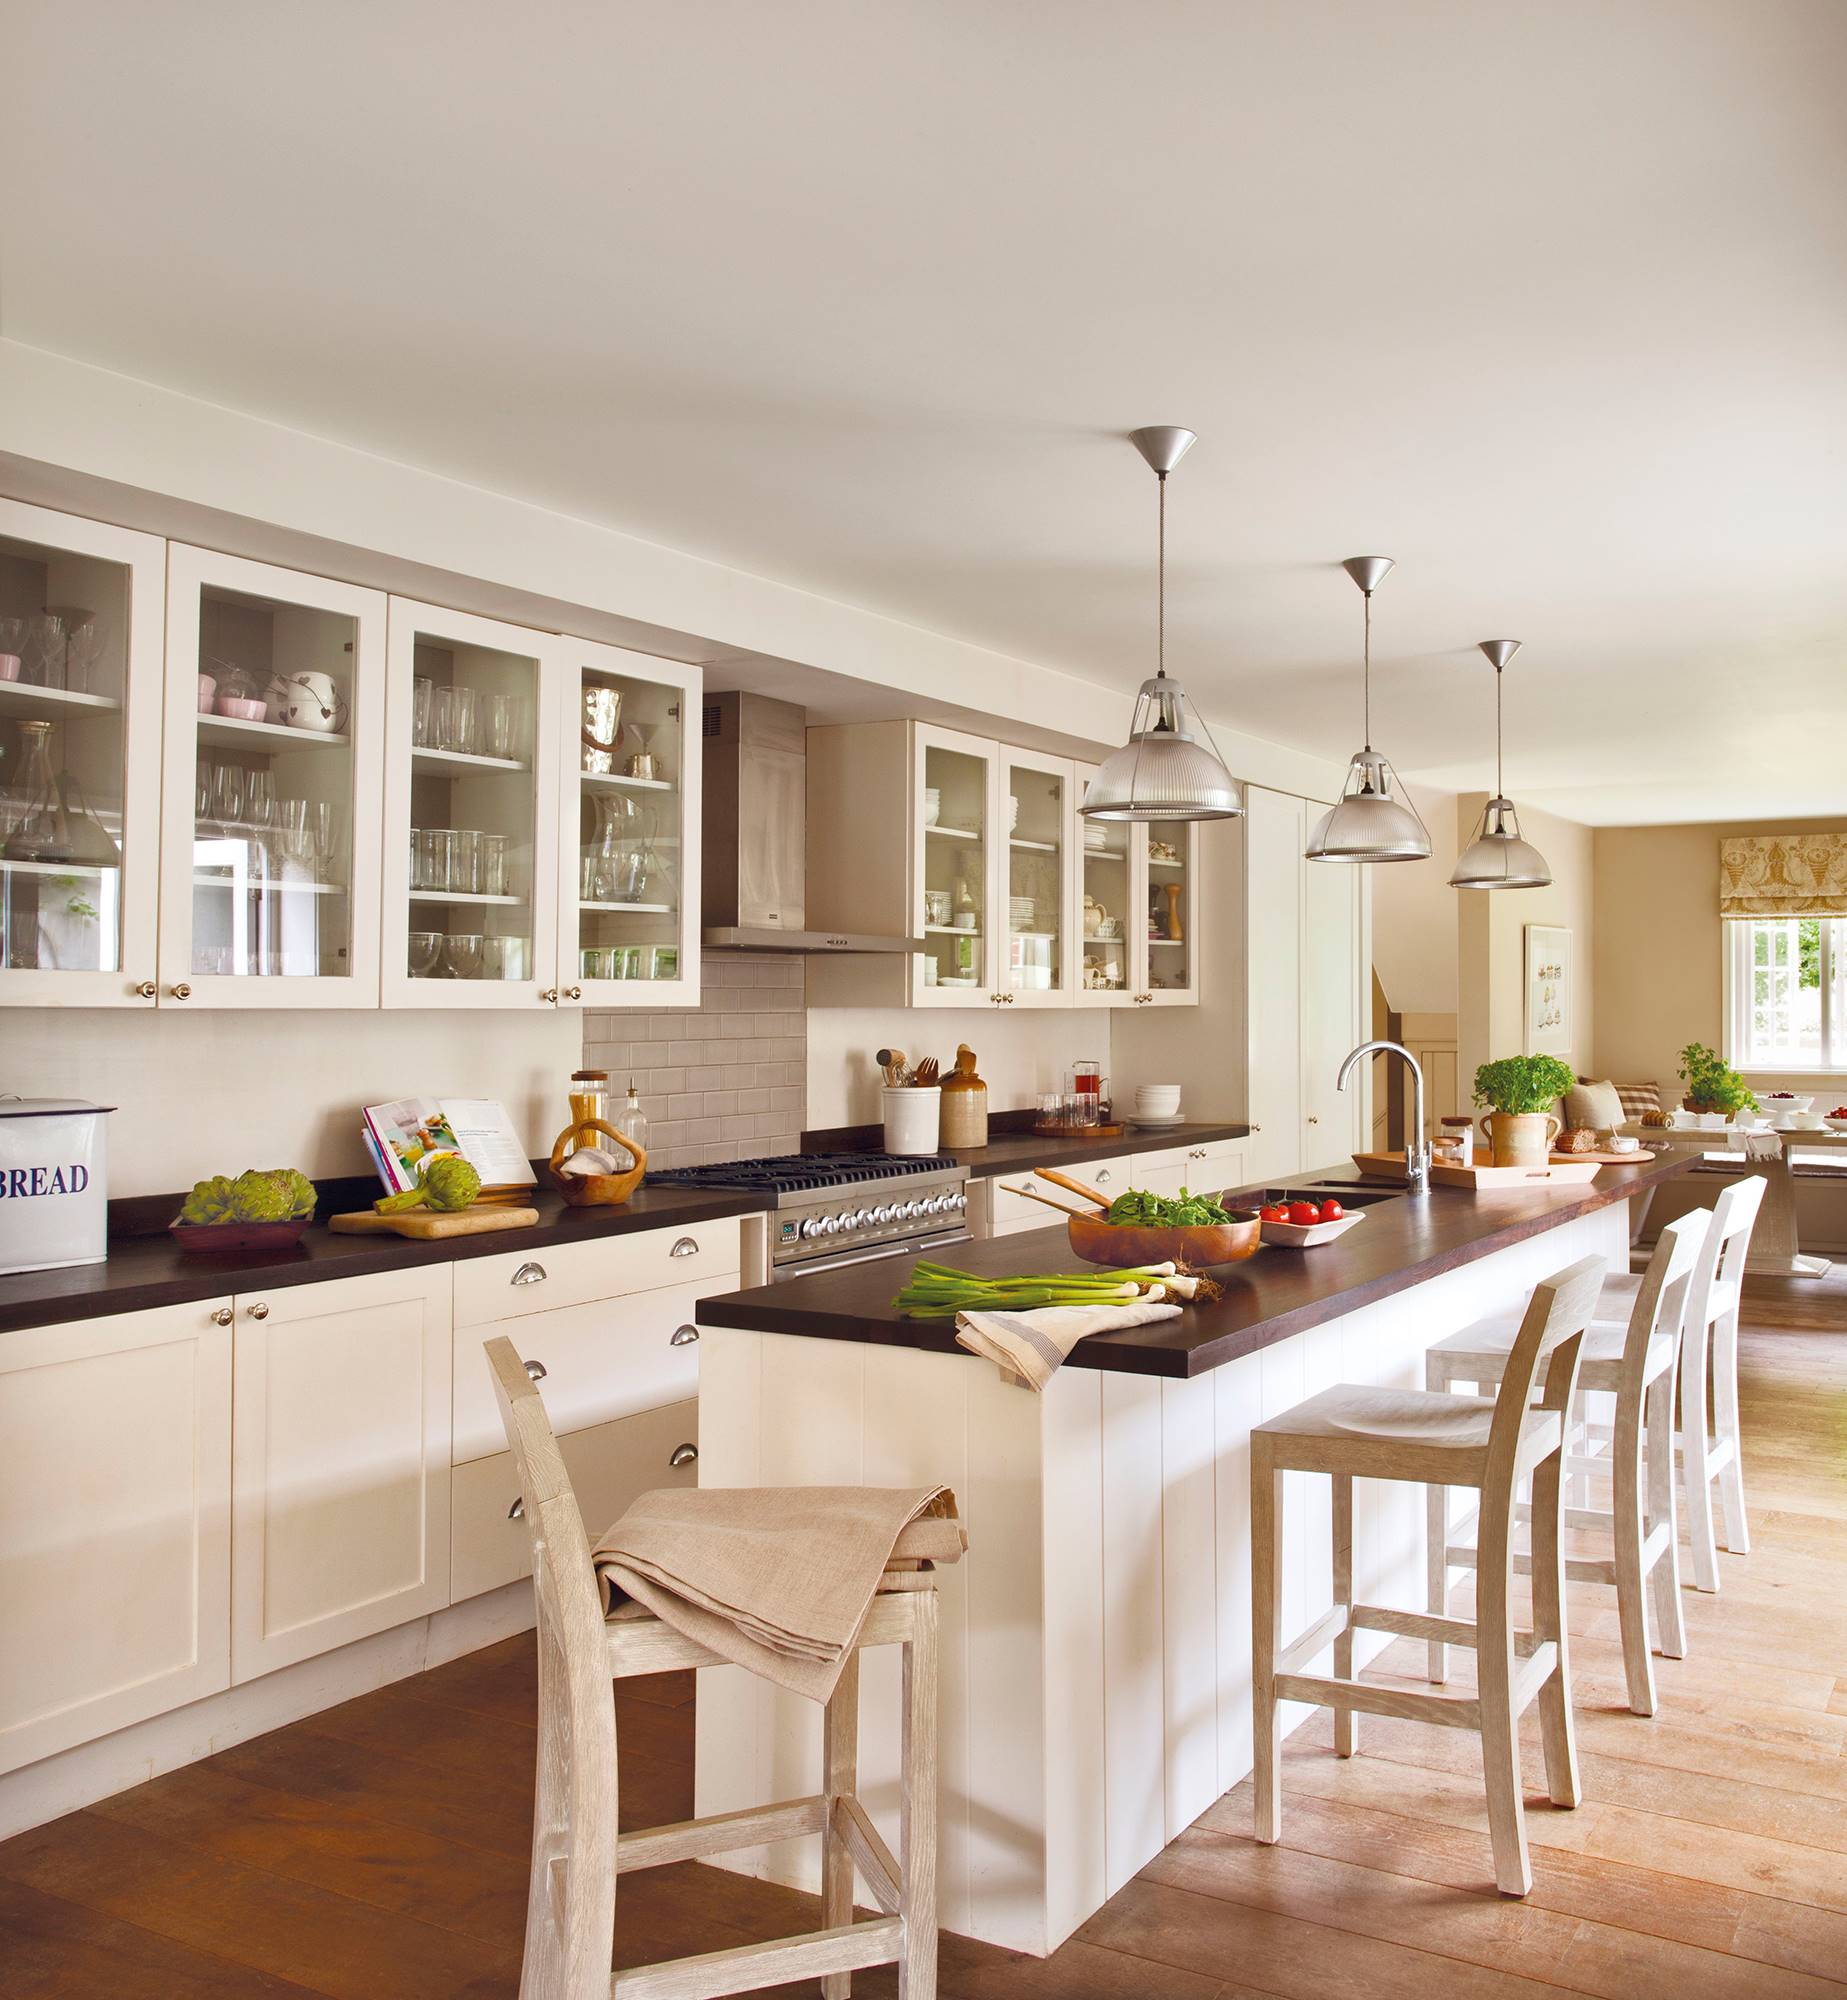 large-white-kitchen-with-island-and-stools -00368832 a5521e98.  Ear bar!